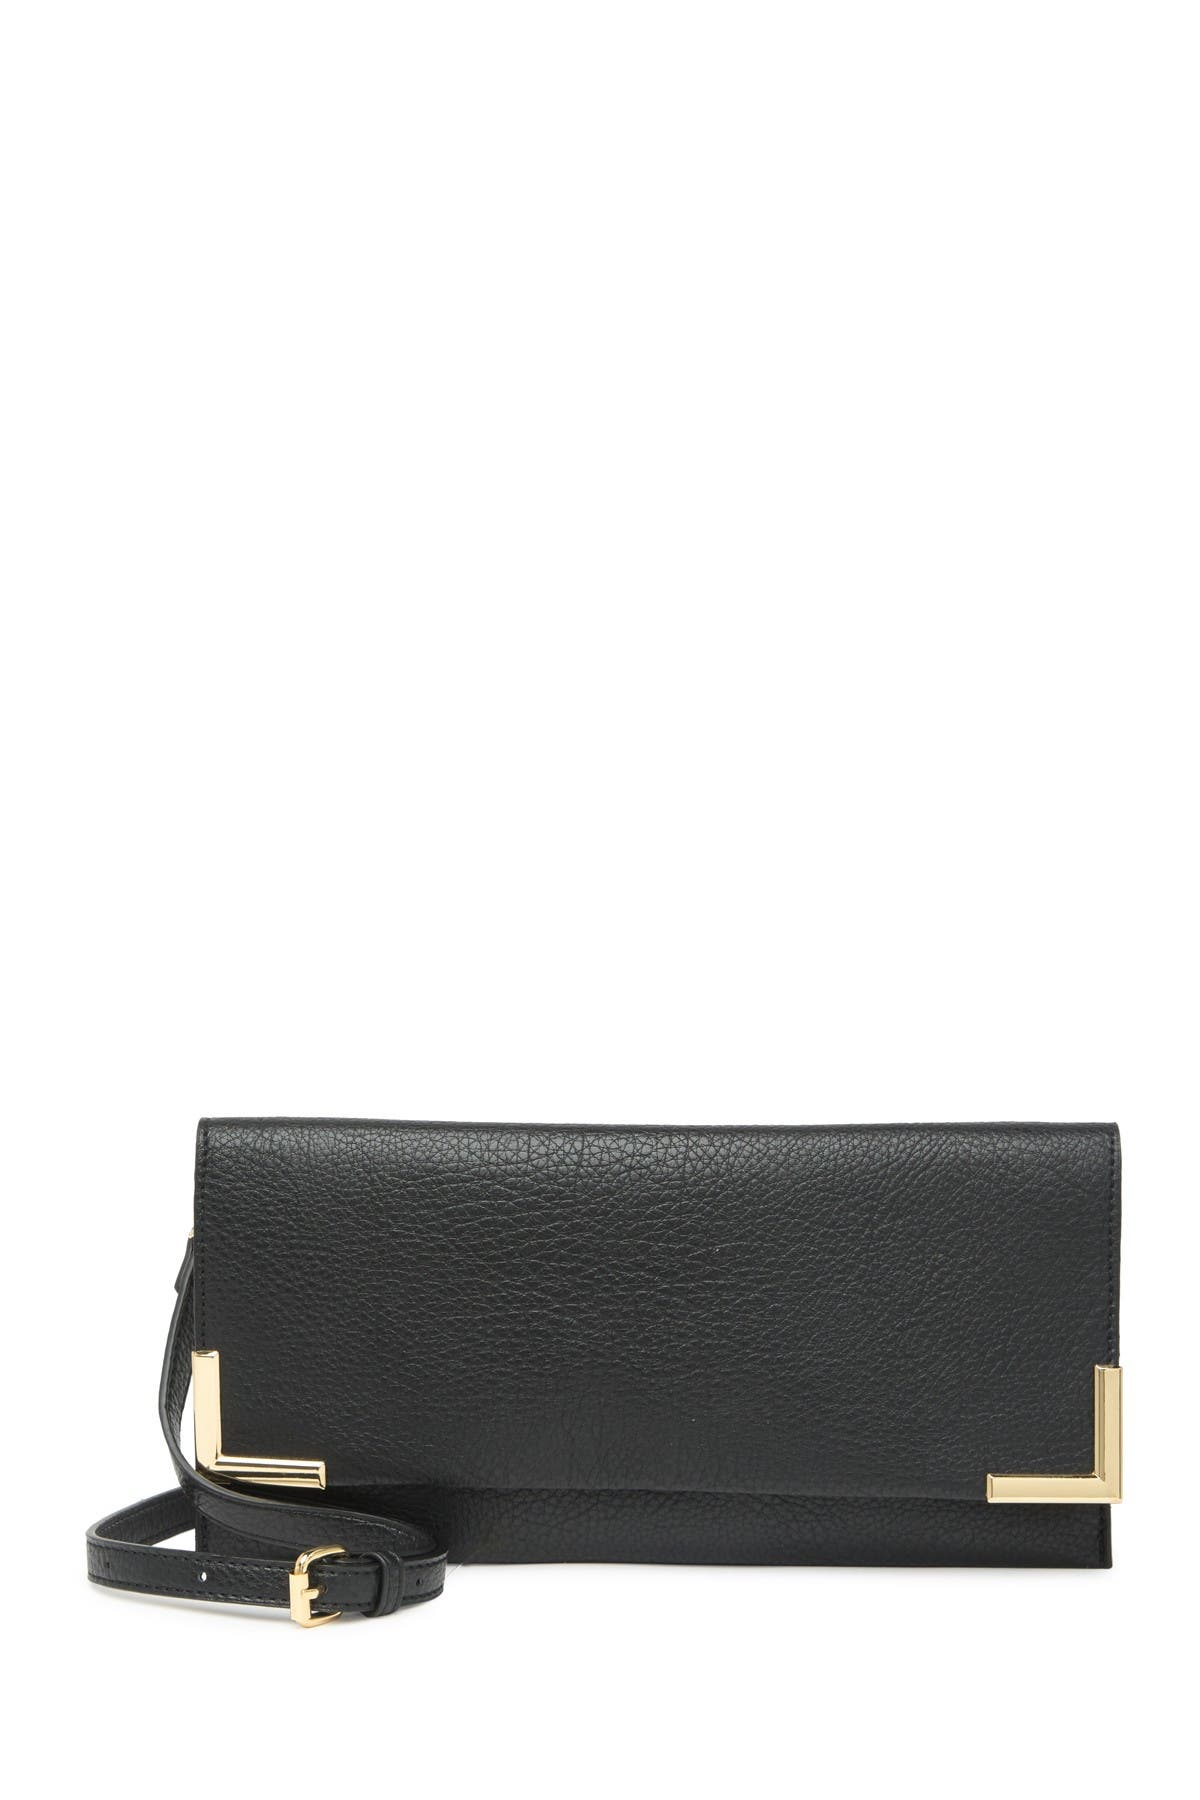 Image of Steve Madden Caris Clutch